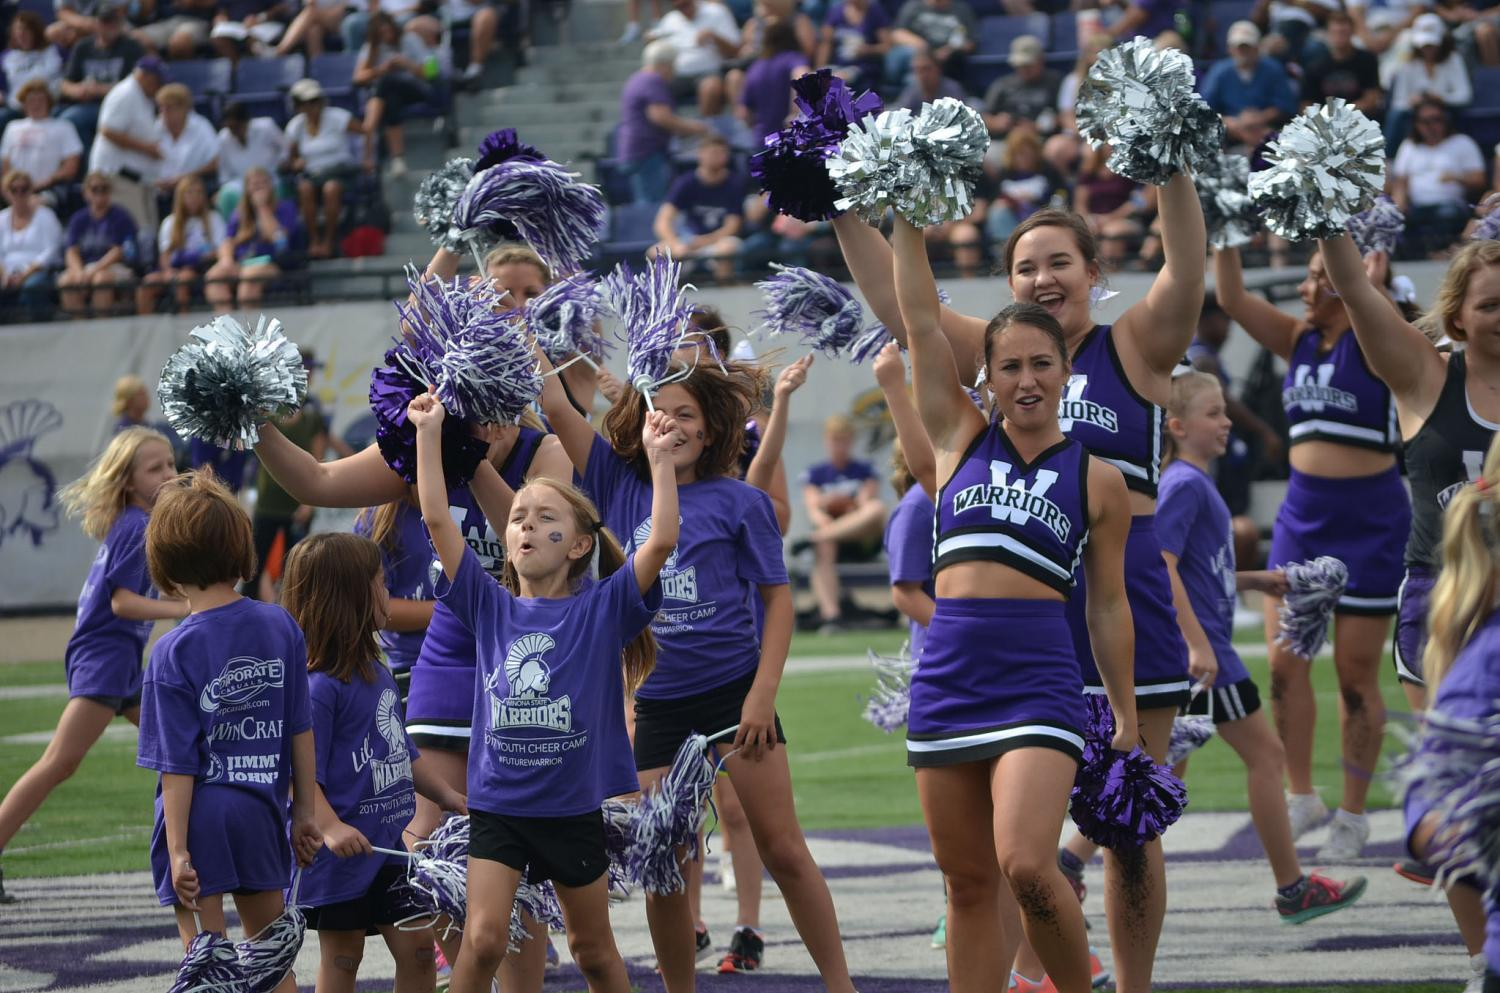 Cheerleader Morgan Anderson cheers along side campers from the annual Warrior Youth Cheer Camp at Saturday, Sept. 17's football game. The camp taught its 65 participants different moves and lifts earlier in the day in McCown Gymnasium. Warrior Youth Cheer Camp is offered to all children, kindergarten through eighth grade.